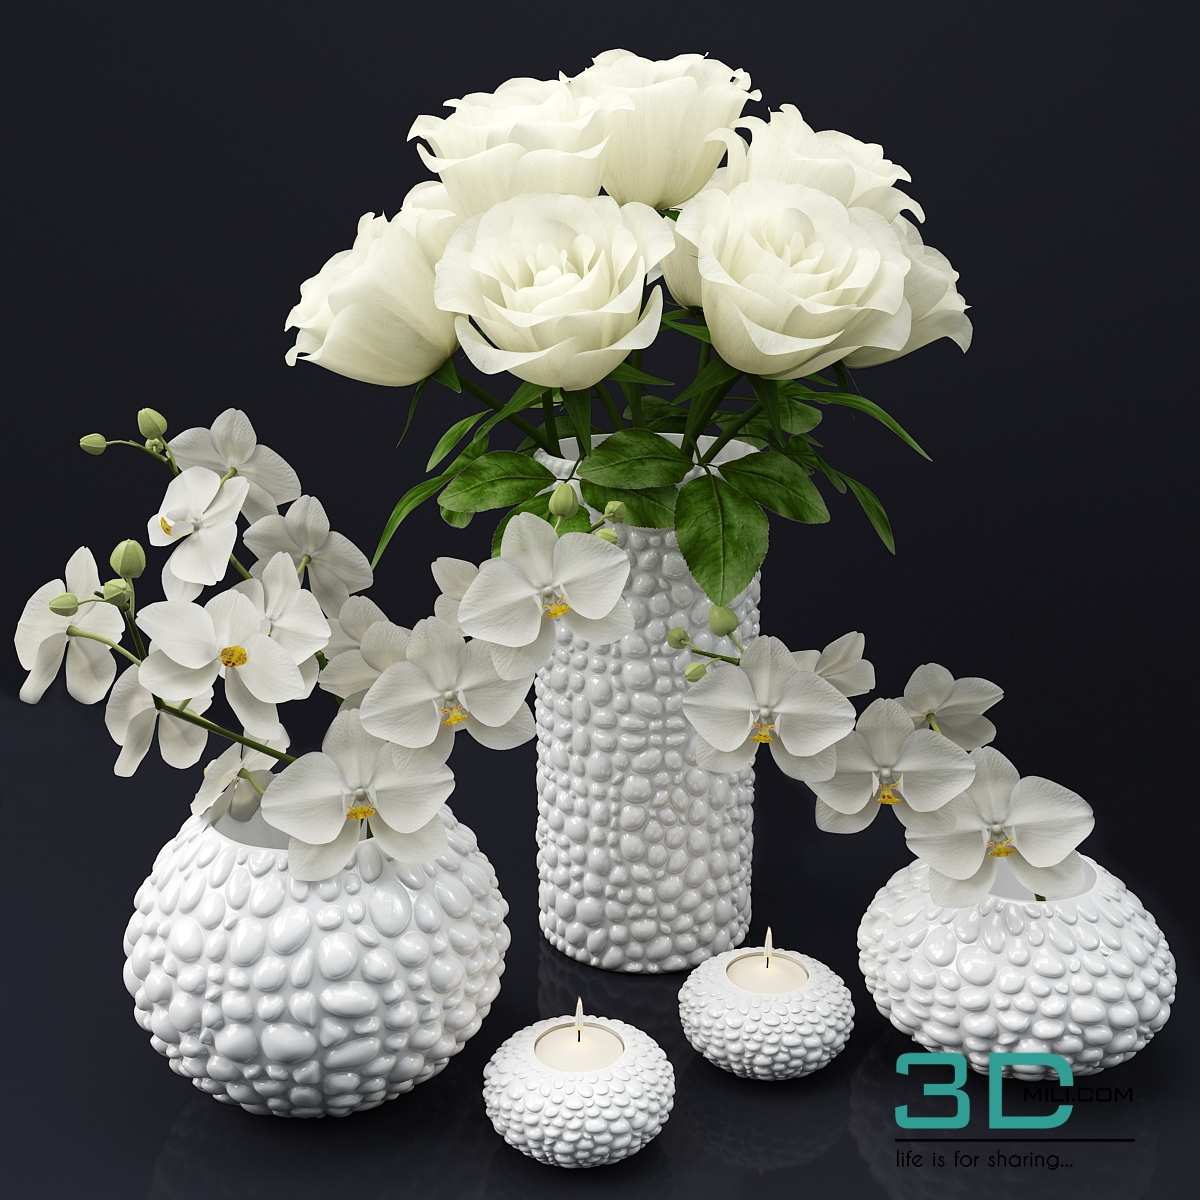 12 flower 3d model 3d mili download 3d model free 3d for Mobel 3d download